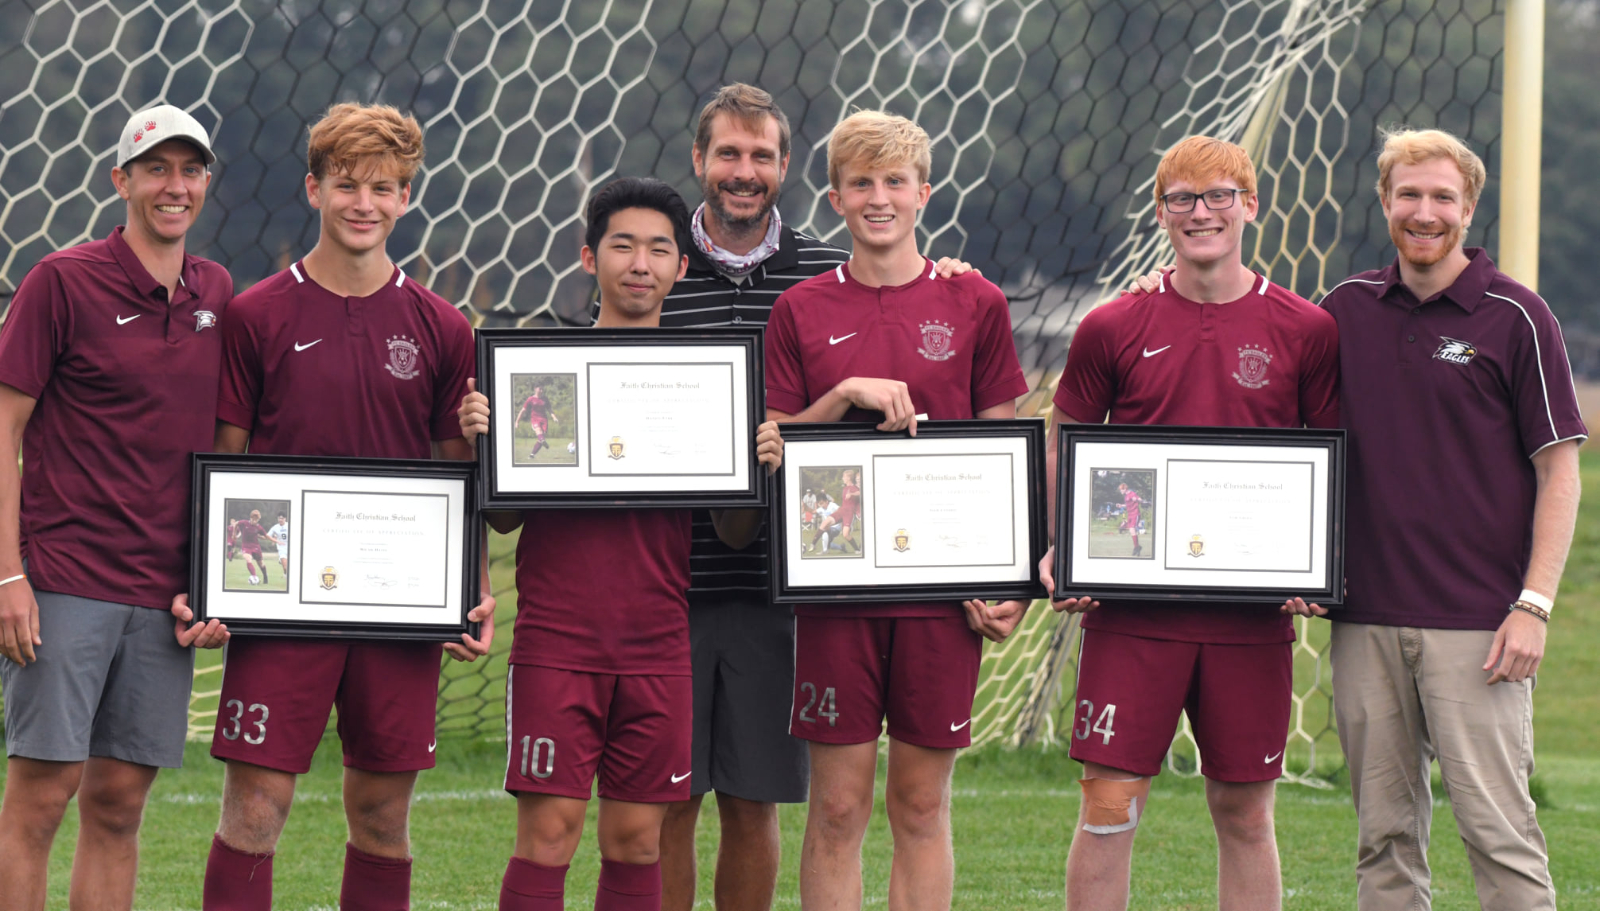 Boys Soccer Draw on Senior night / Girls Soccer win big / Volleyball Falls to Falcons